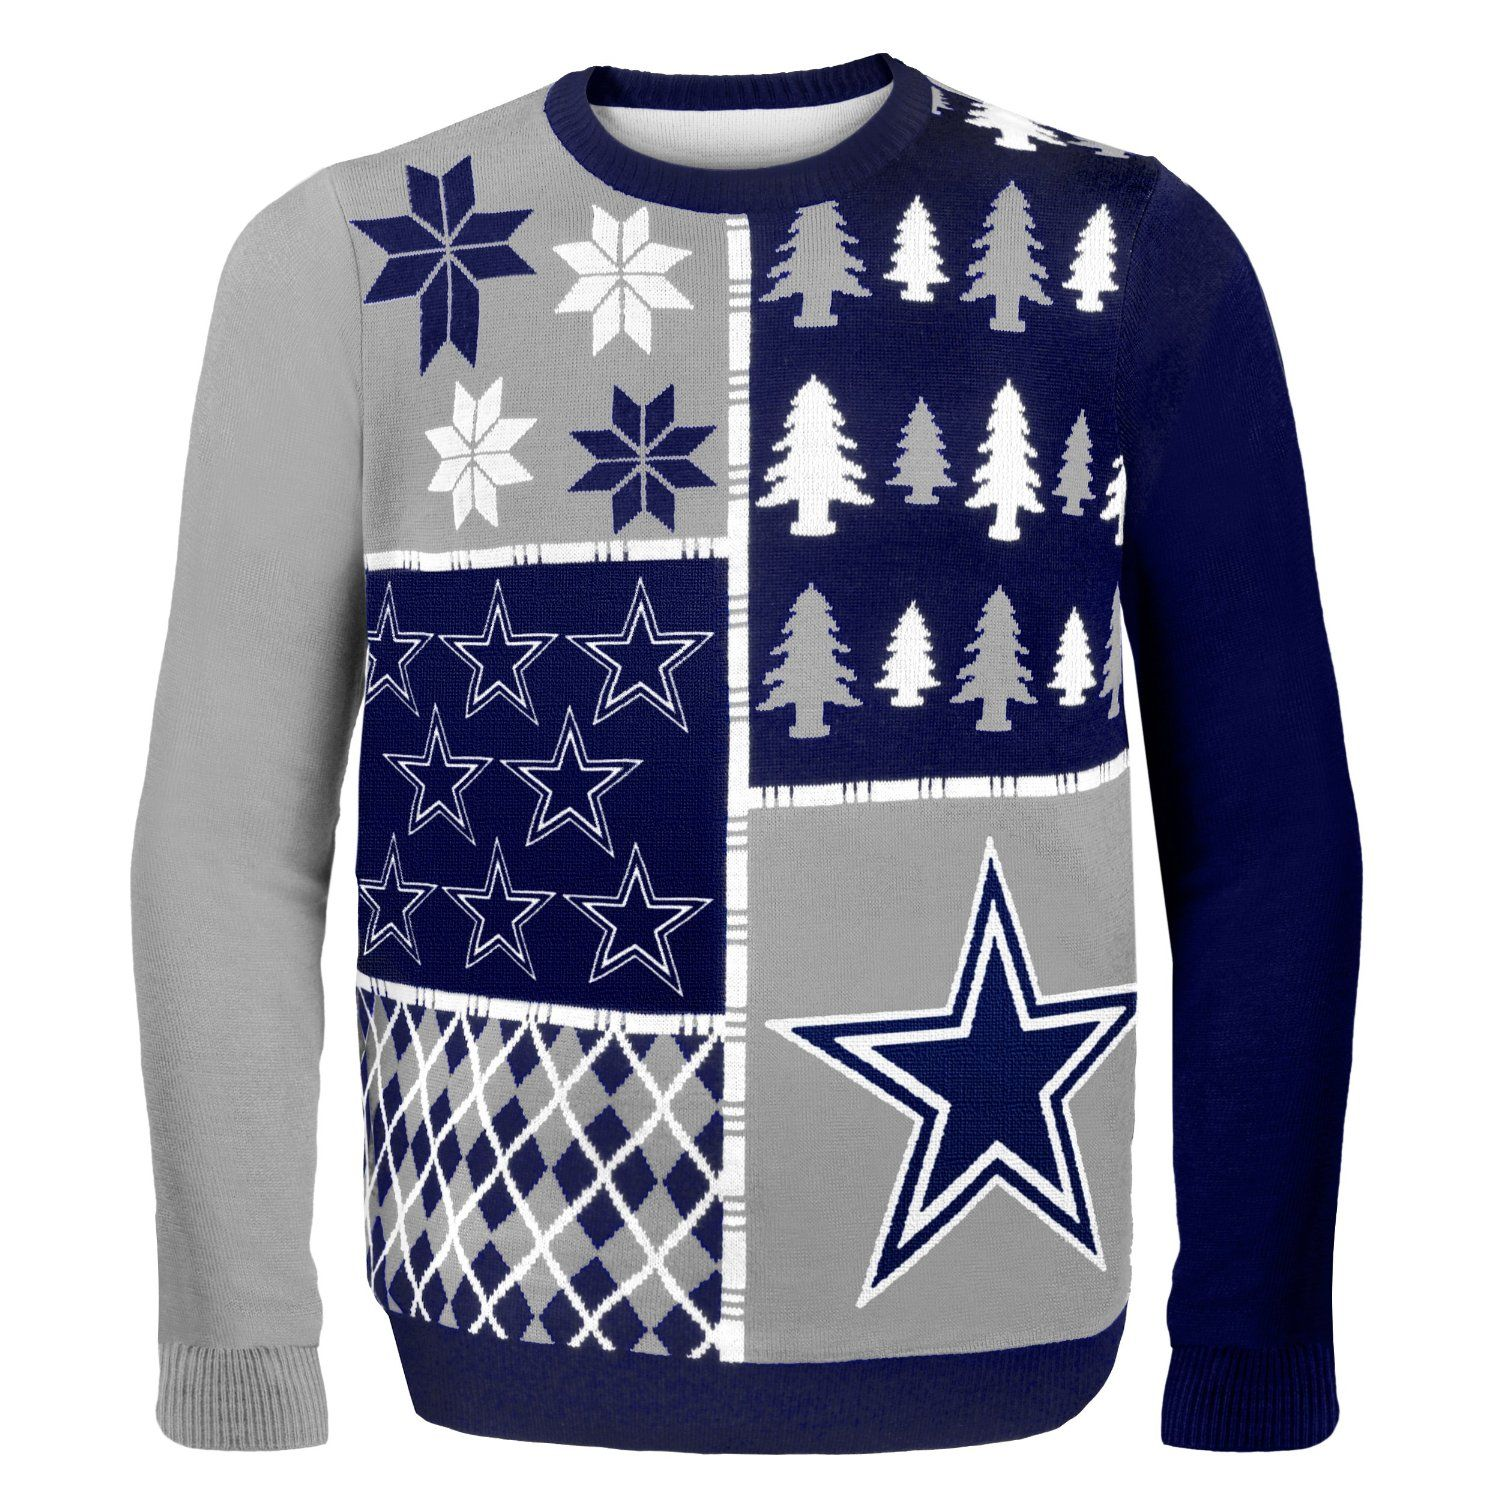 detailed look e3b47 5a64e NFL Busy Block Ugly Sweater - Dallas Cowboys | NFL-NFC East ...